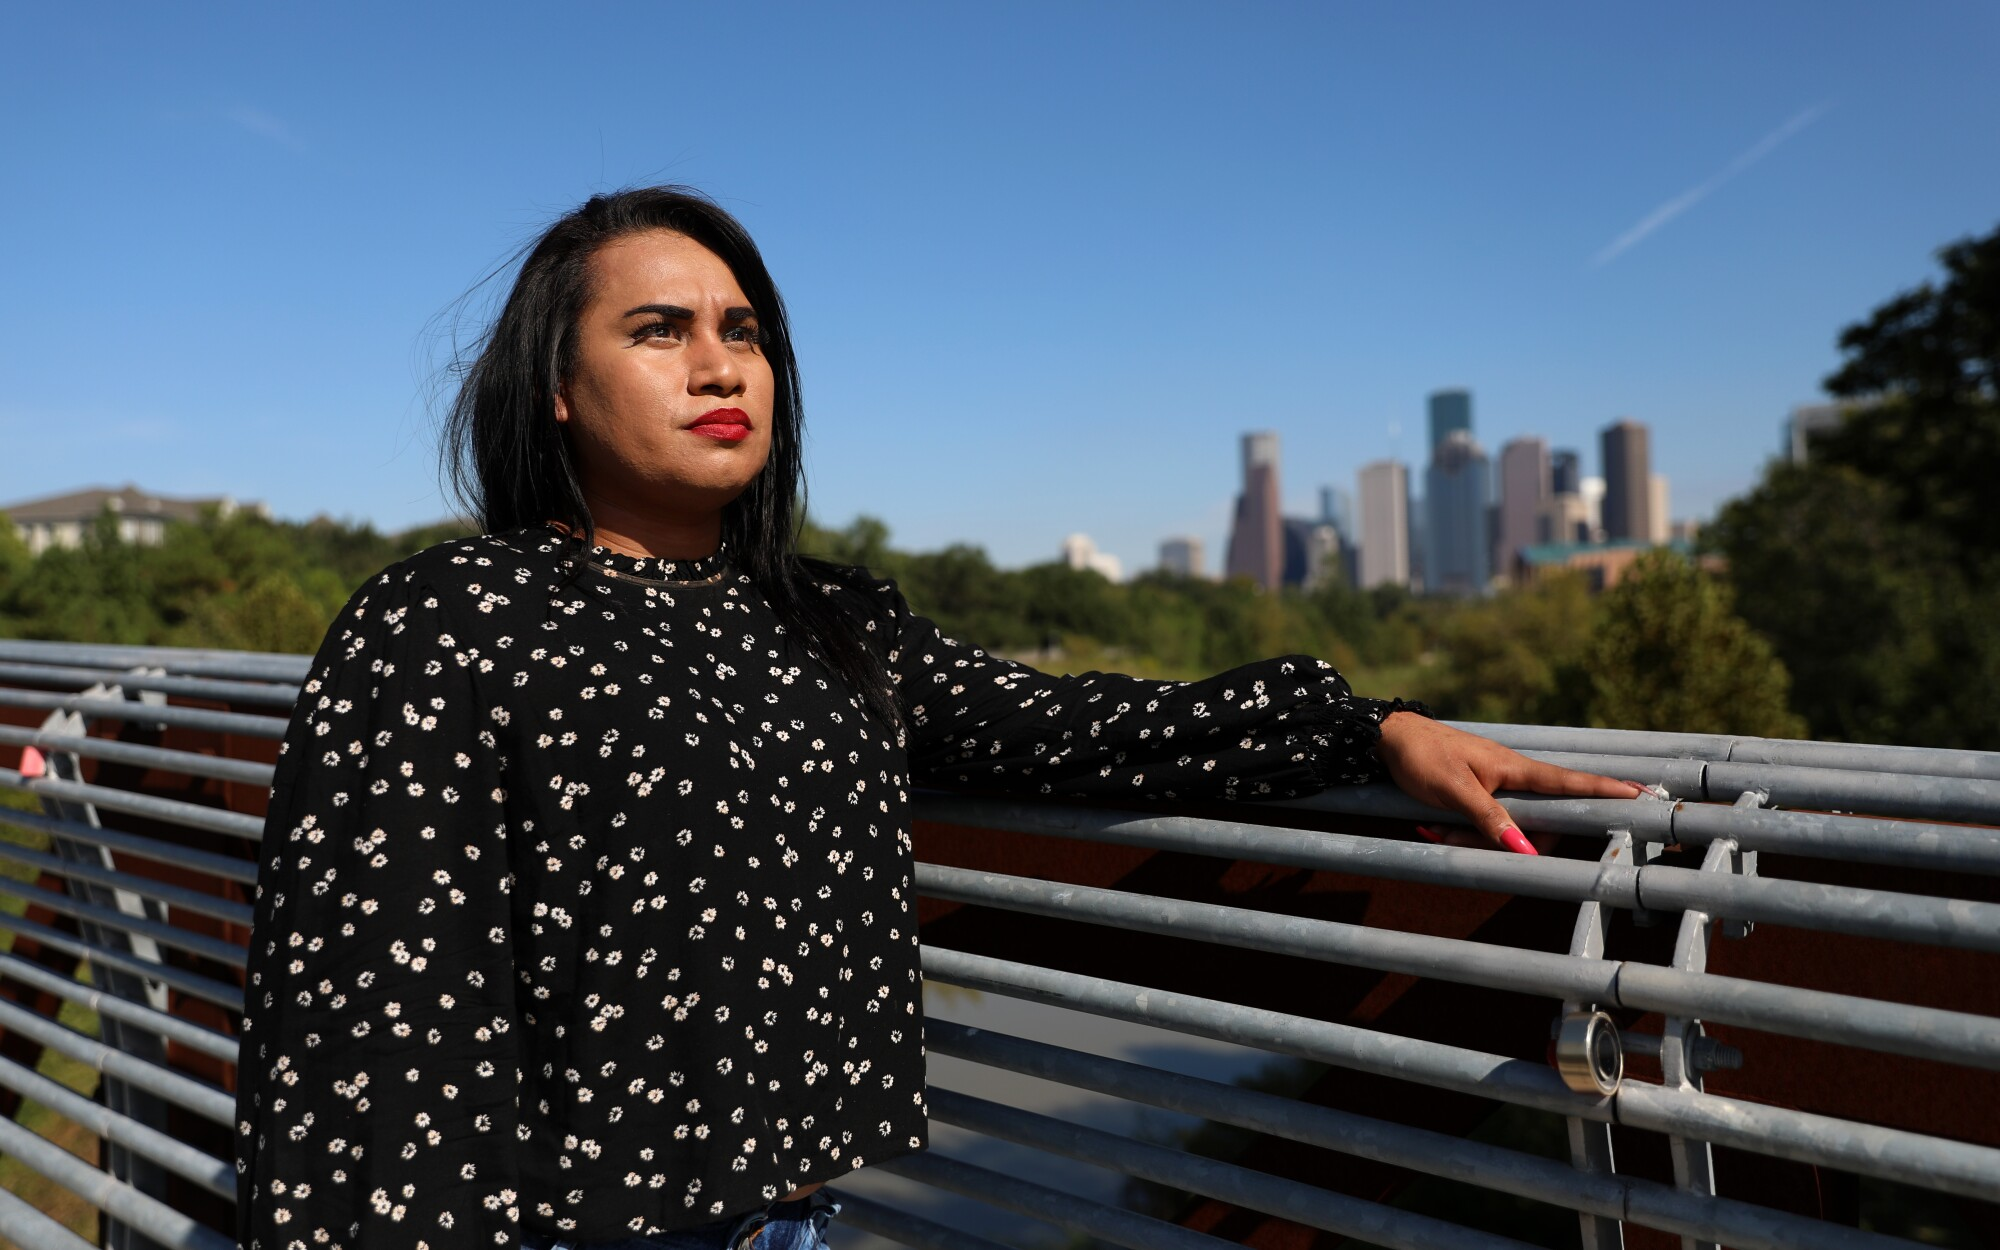 Mayela Villegas fled San Salvador after receiving death threats from gangs.